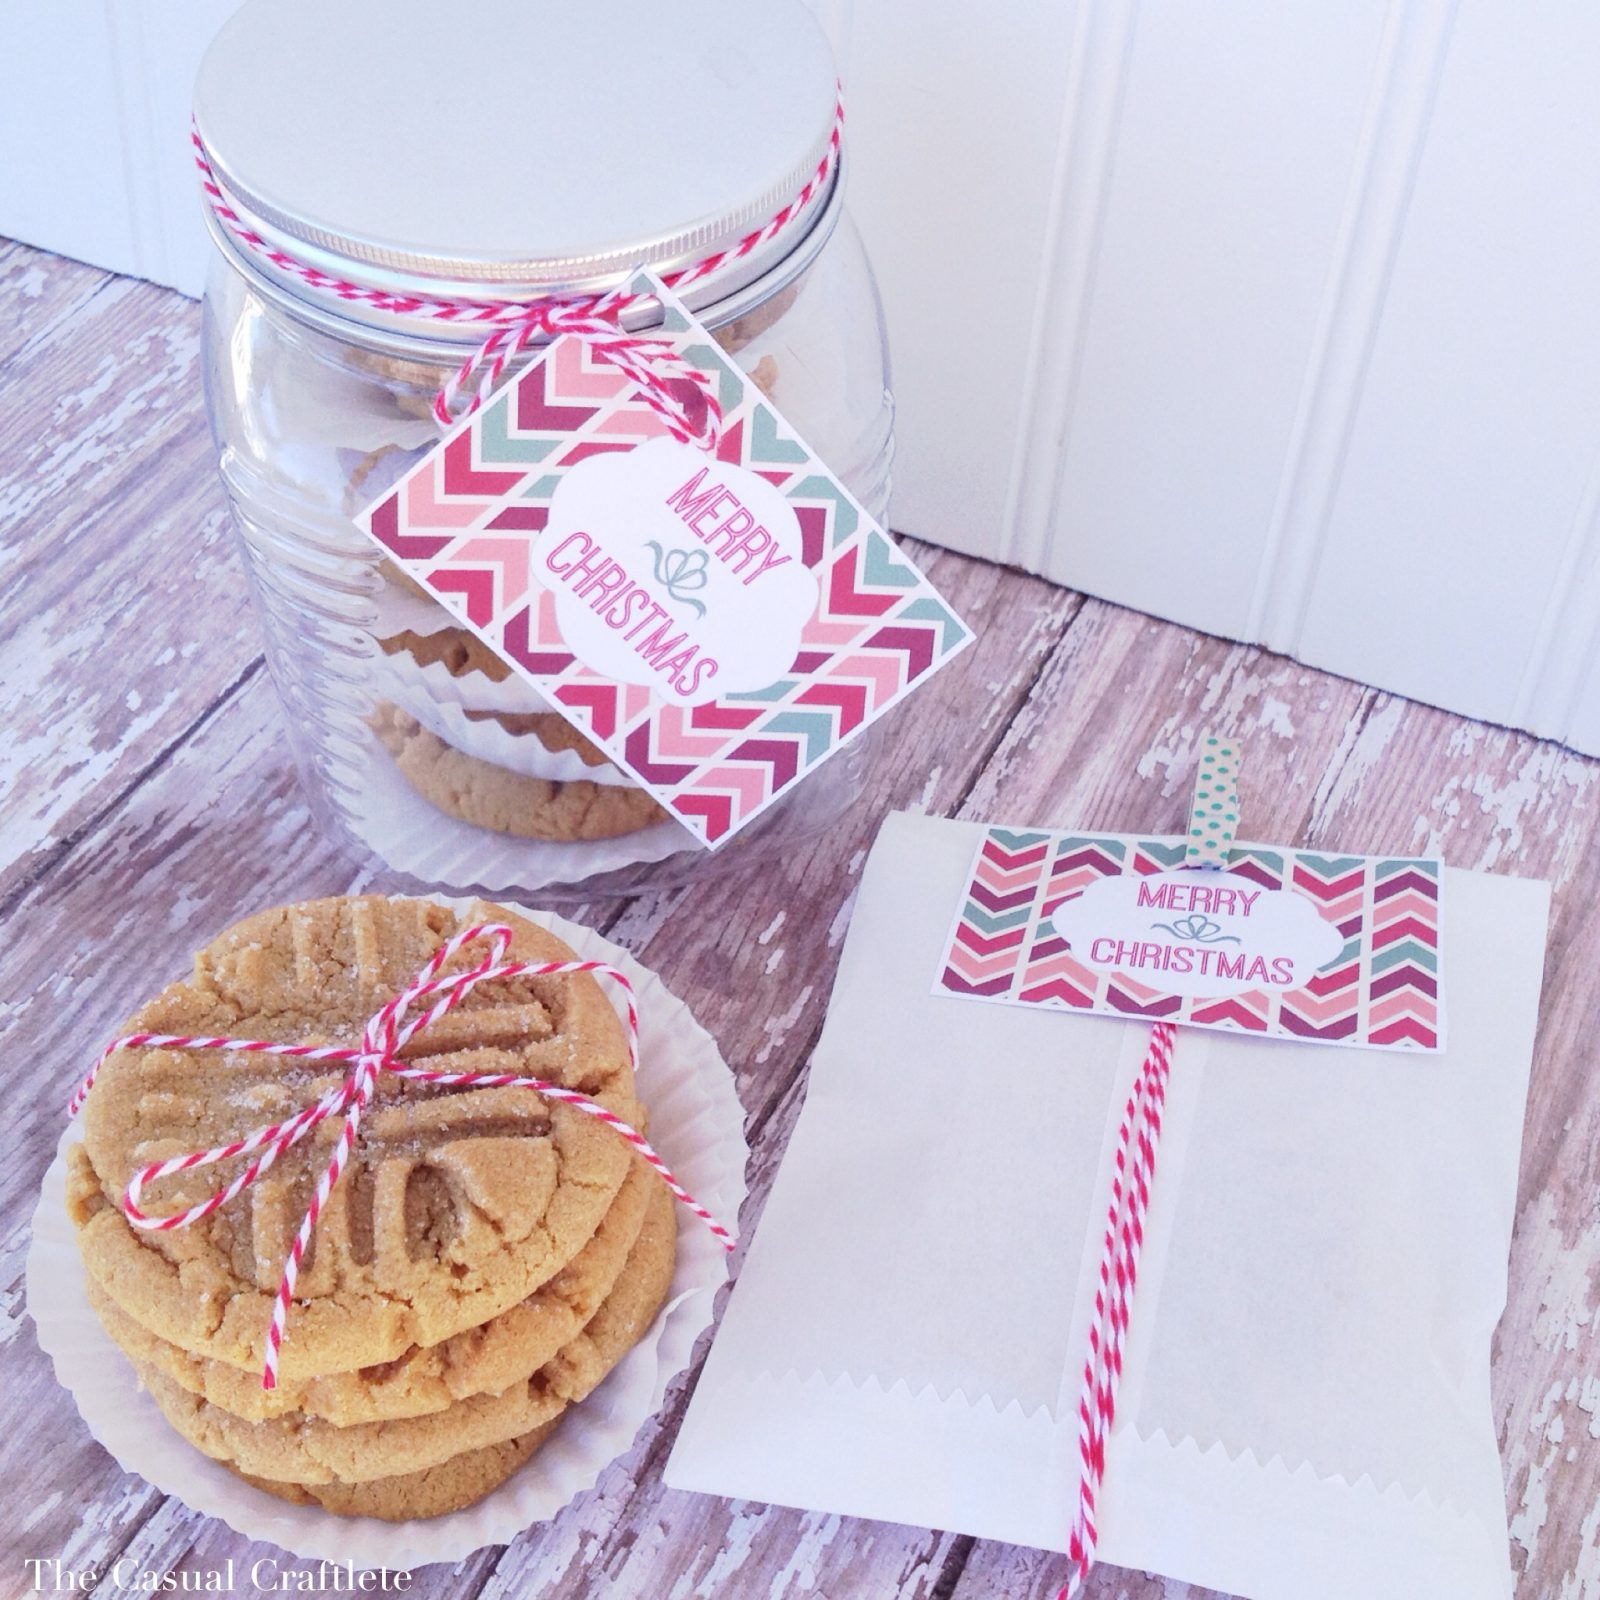 the best ever peanut butter cookies